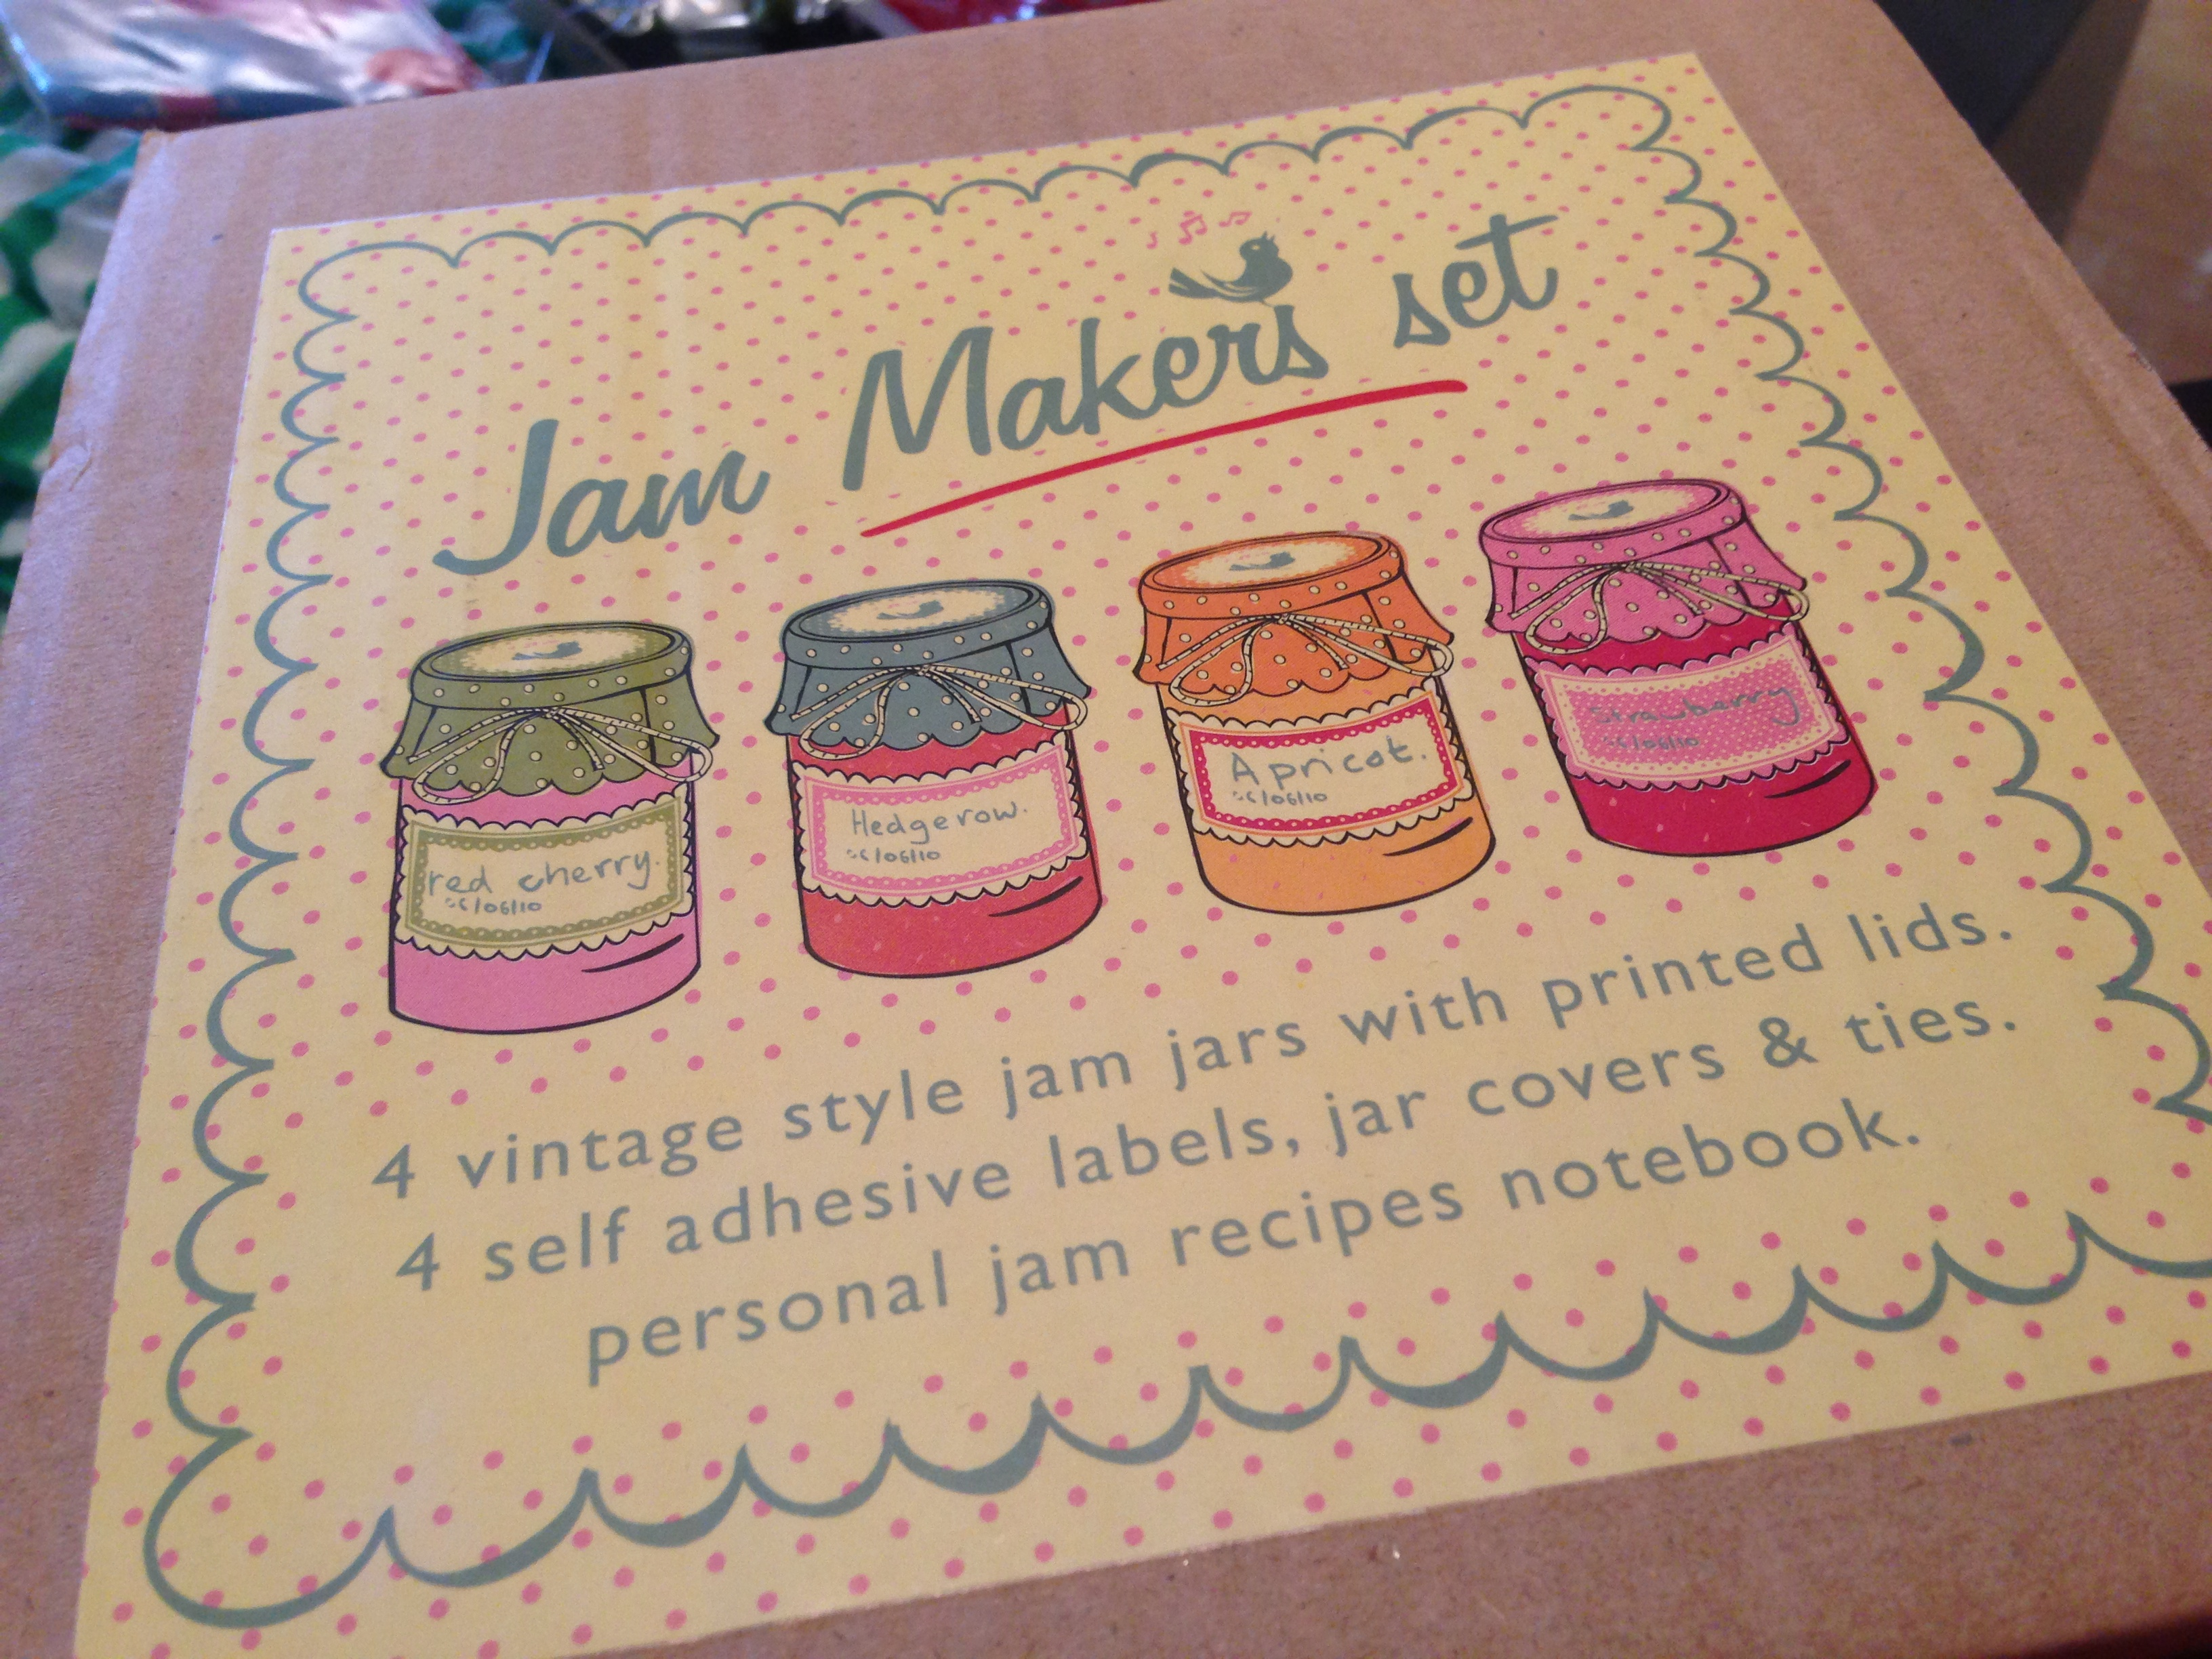 Jam making kit